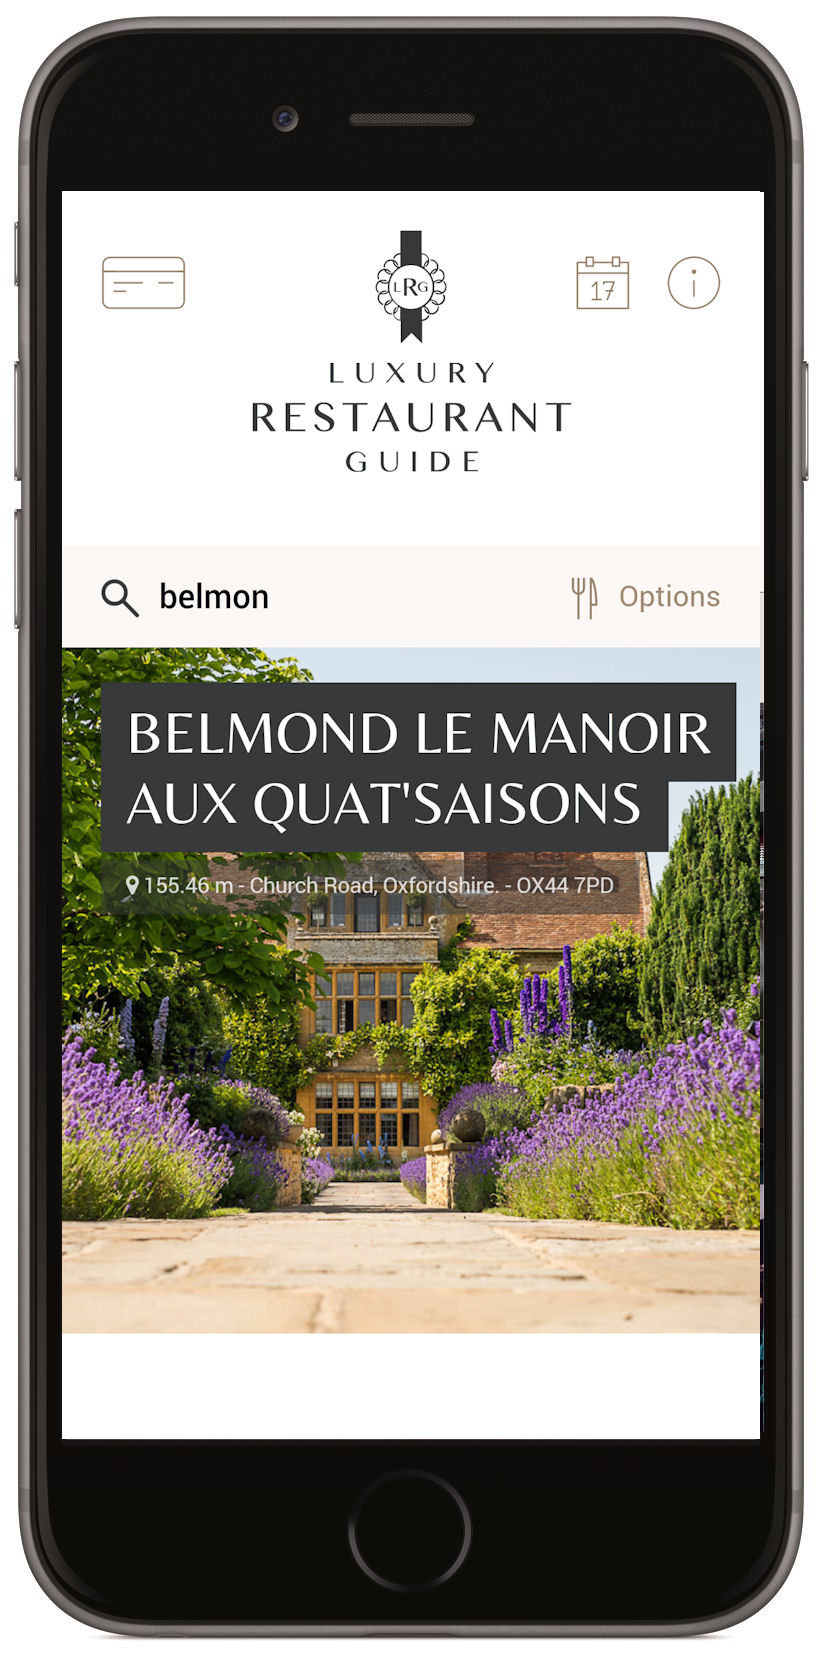 Luxury Restaurant Guide App